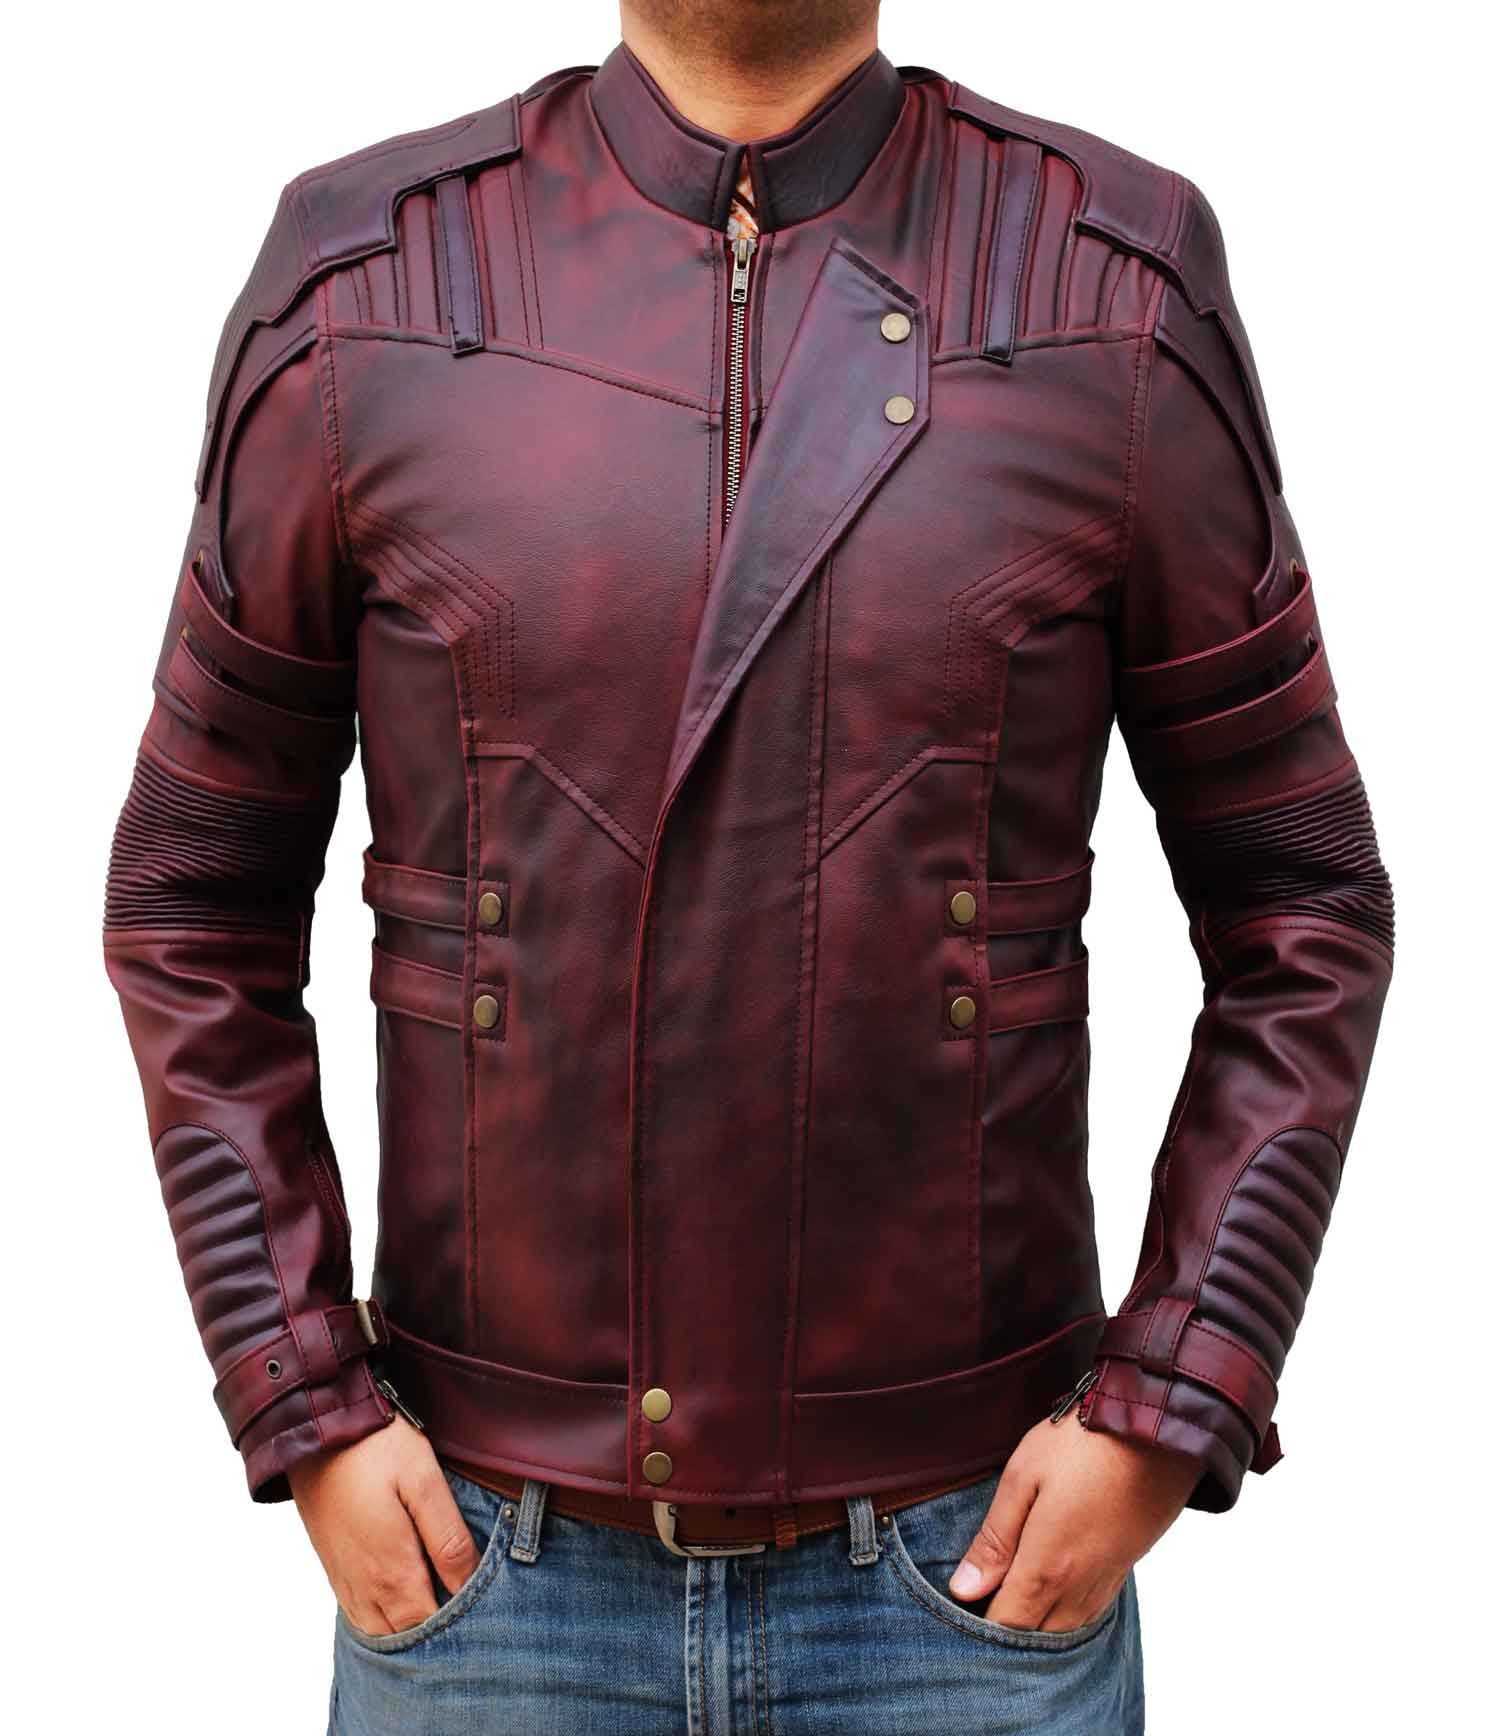 BlingSoul Mens Guardians of The Galaxy 2 Chris Pratt Star Lord Jacket Christmas Gift (S, Red) [PU-GLX3-RD-S]